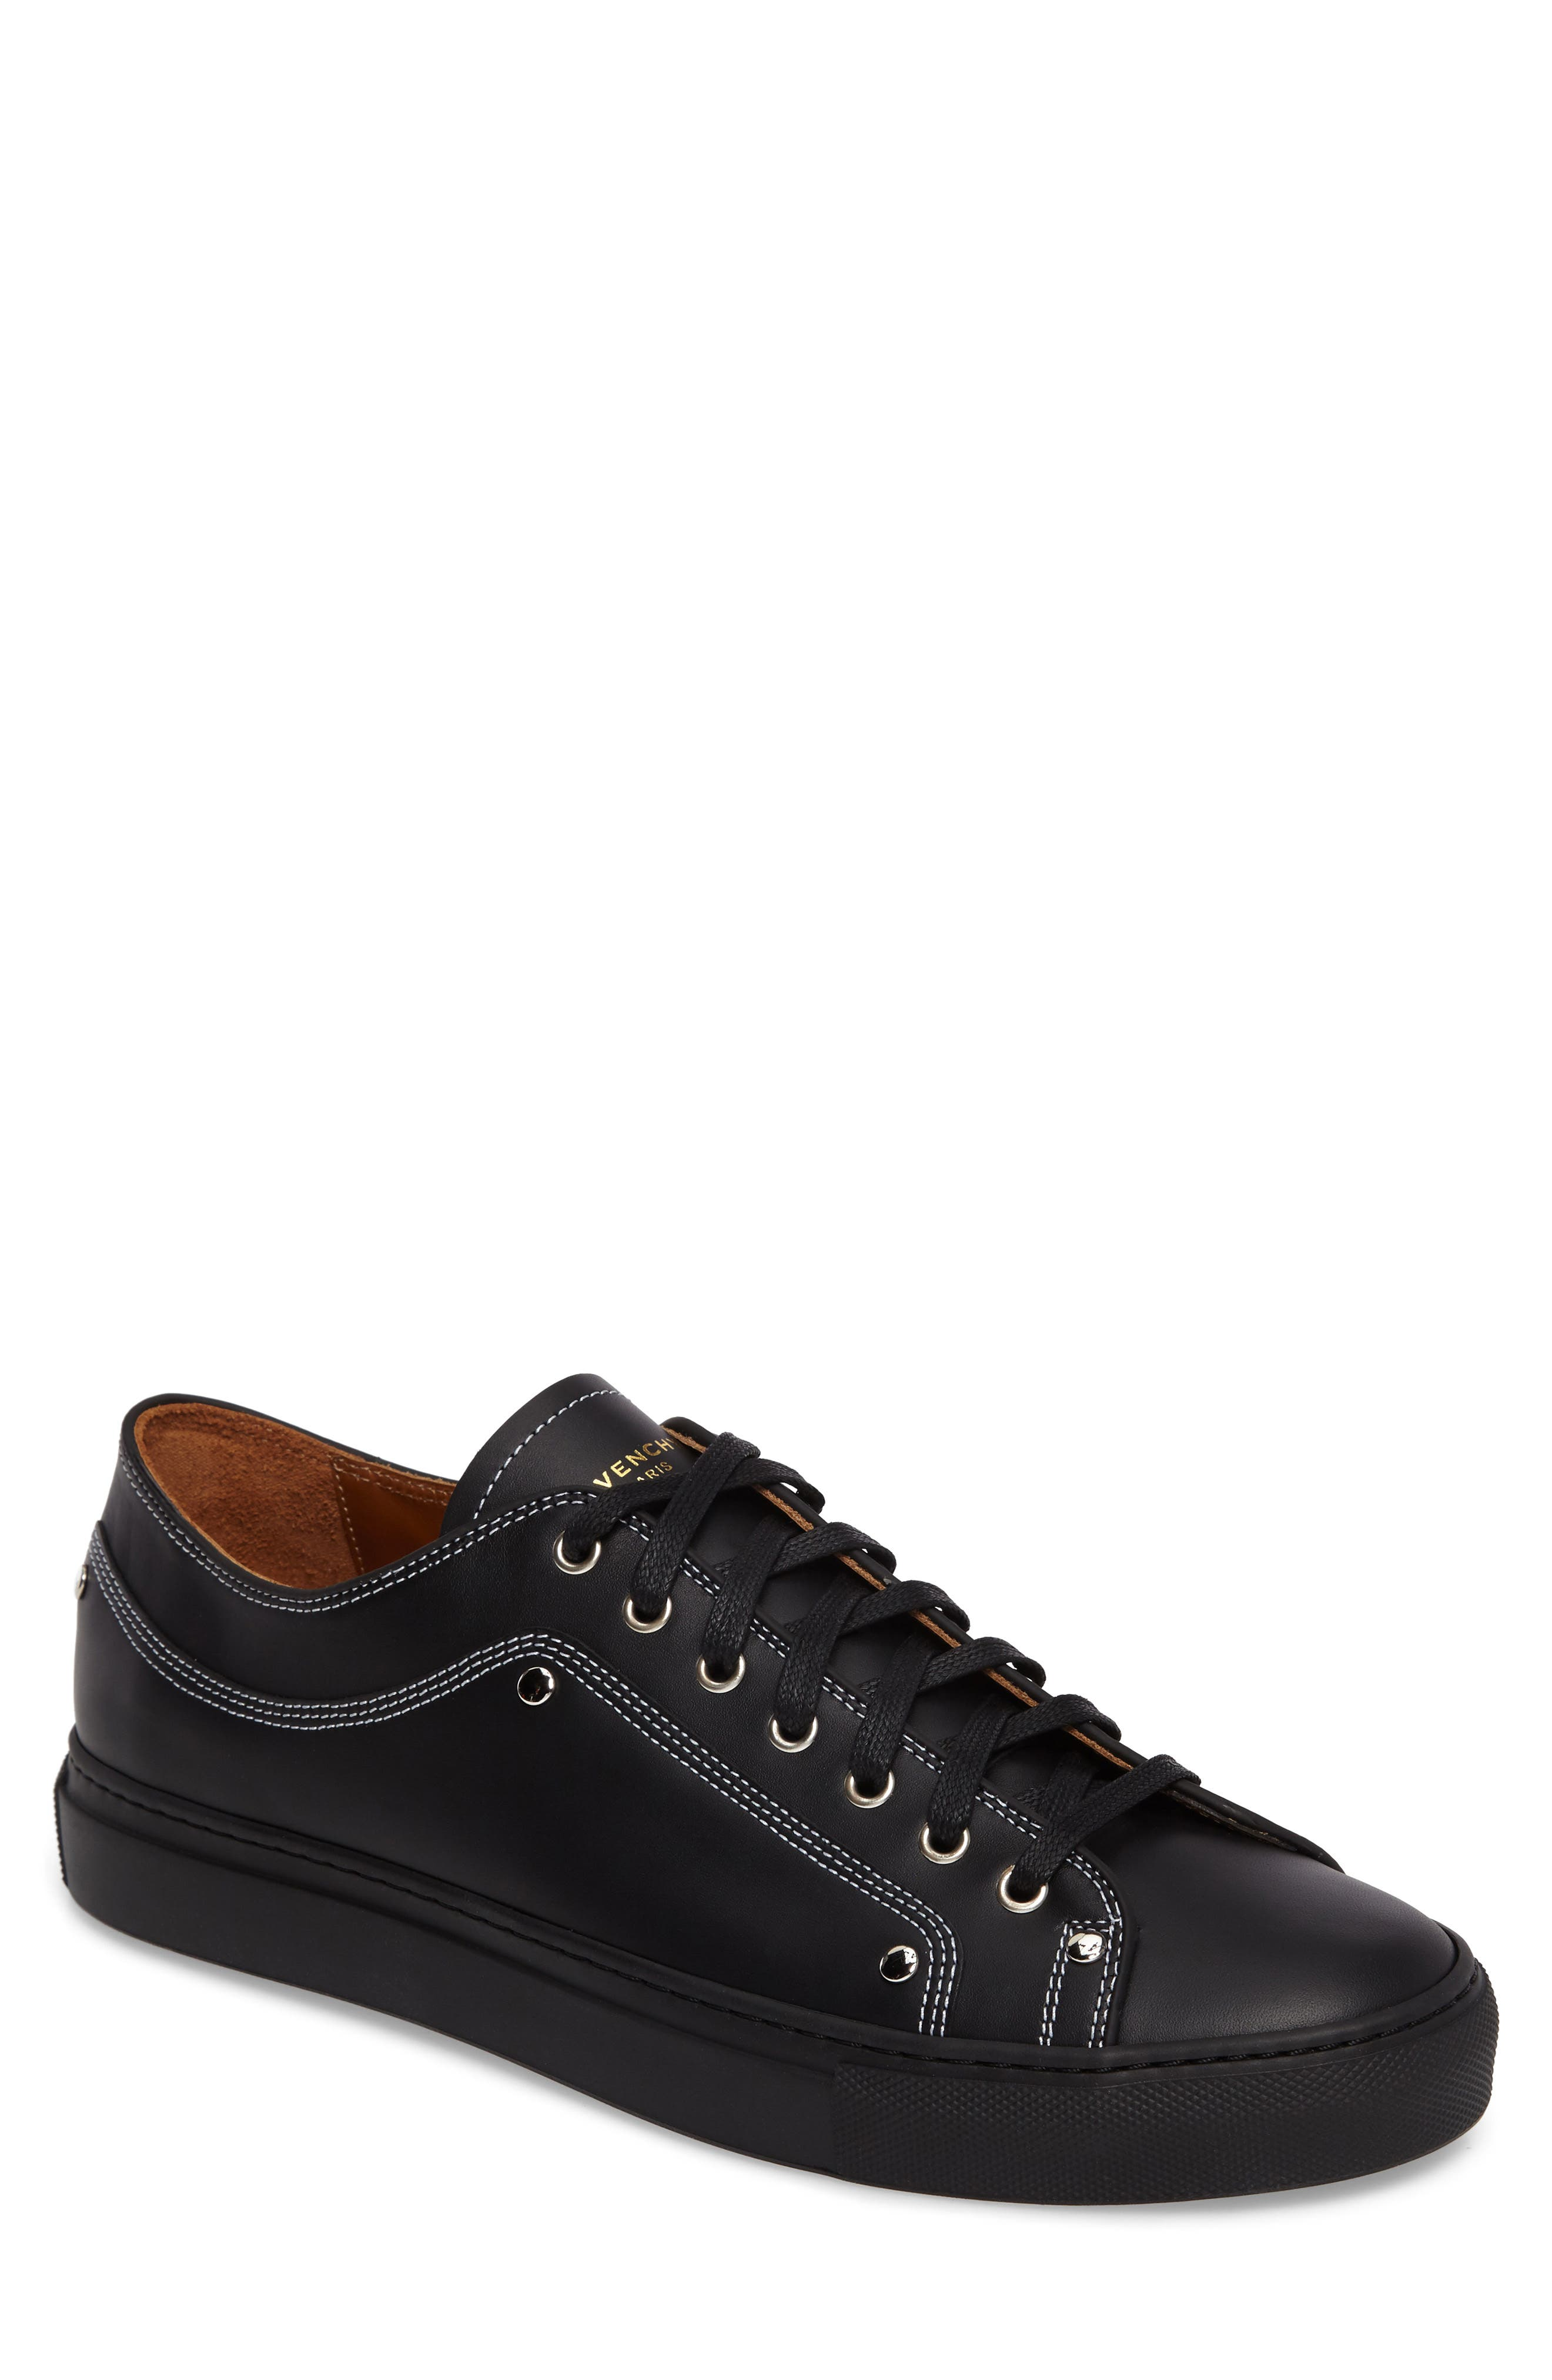 Givenchy Studded Low Top Sneaker (Men)